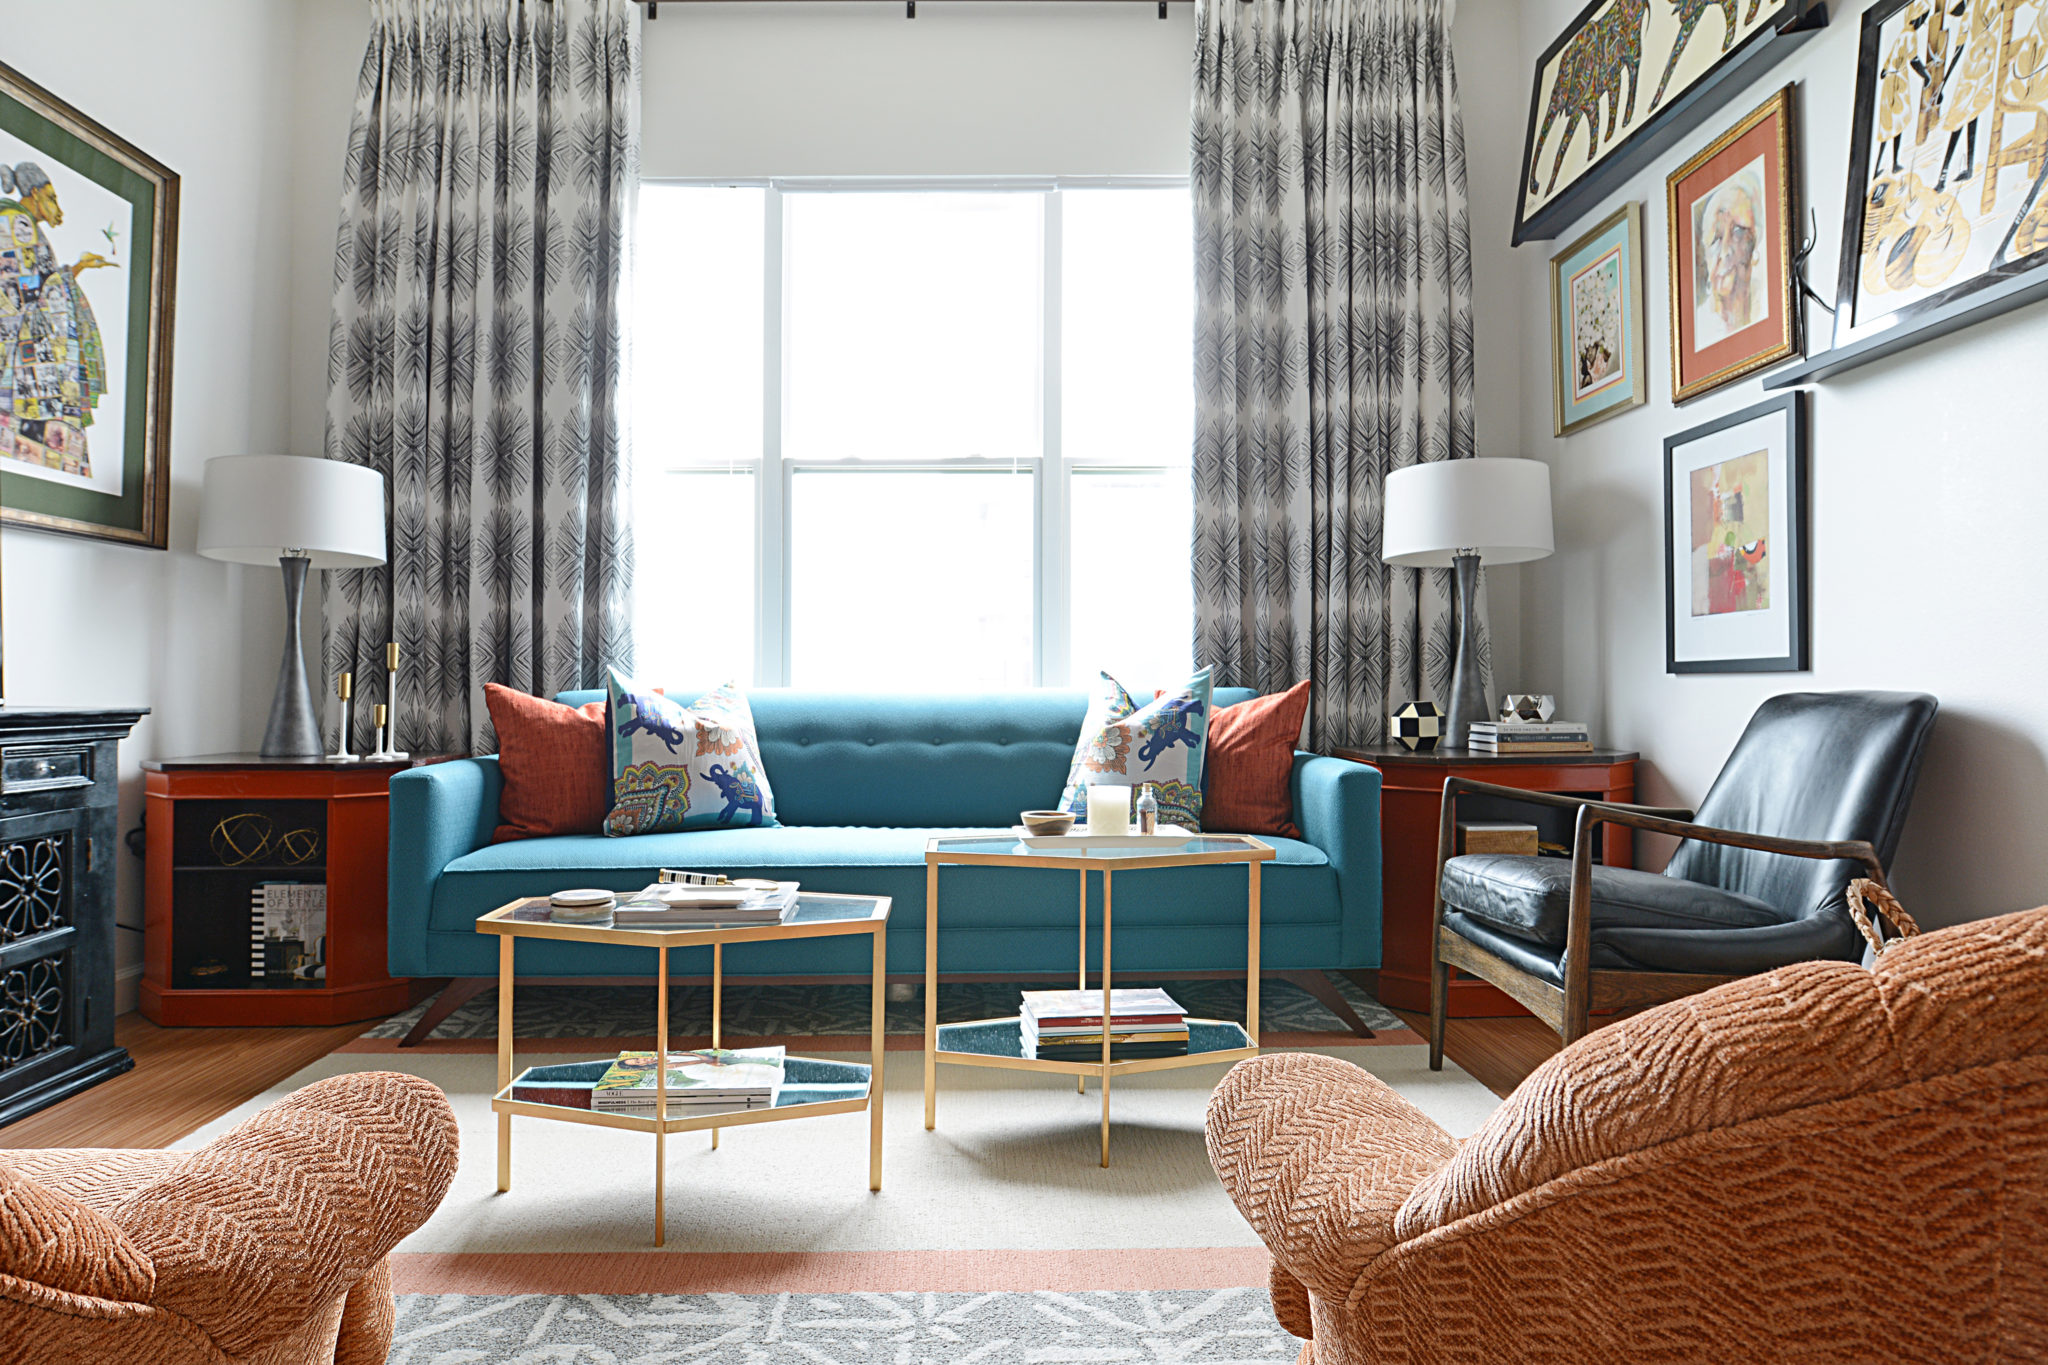 5 Tips For Decorating A Small Space With Southern Style